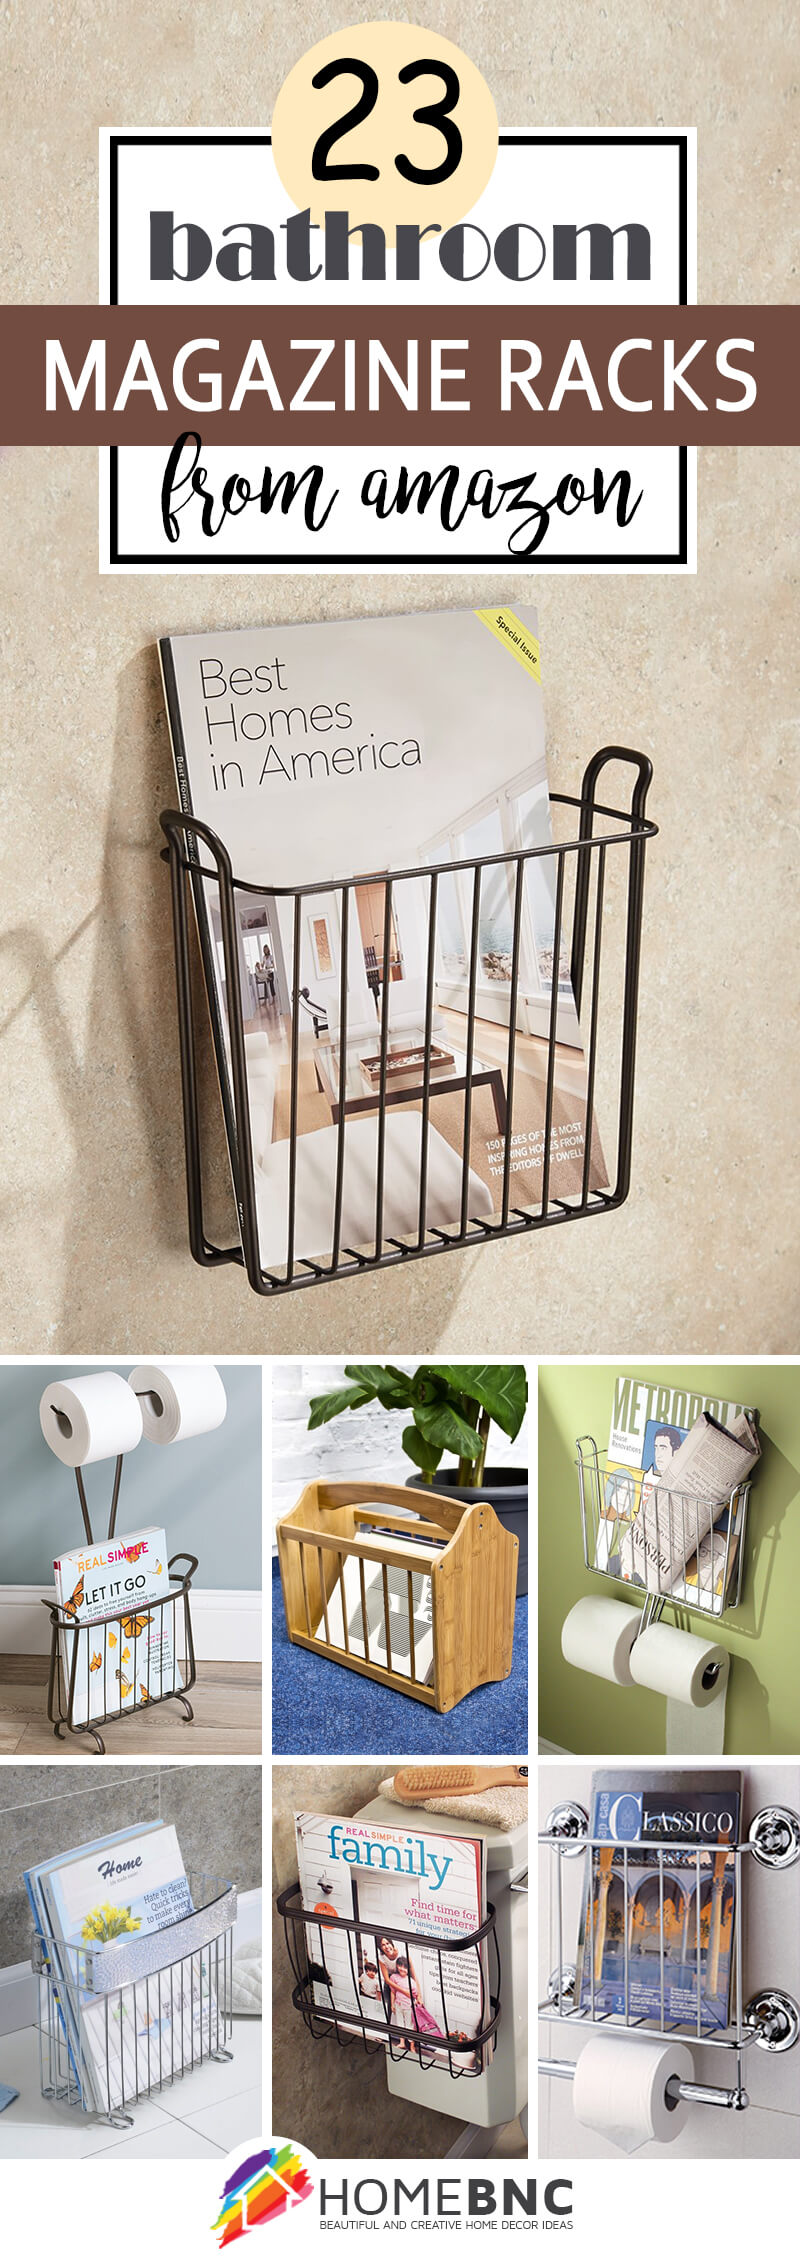 23 Best Bathroom Magazine Rack Ideas To